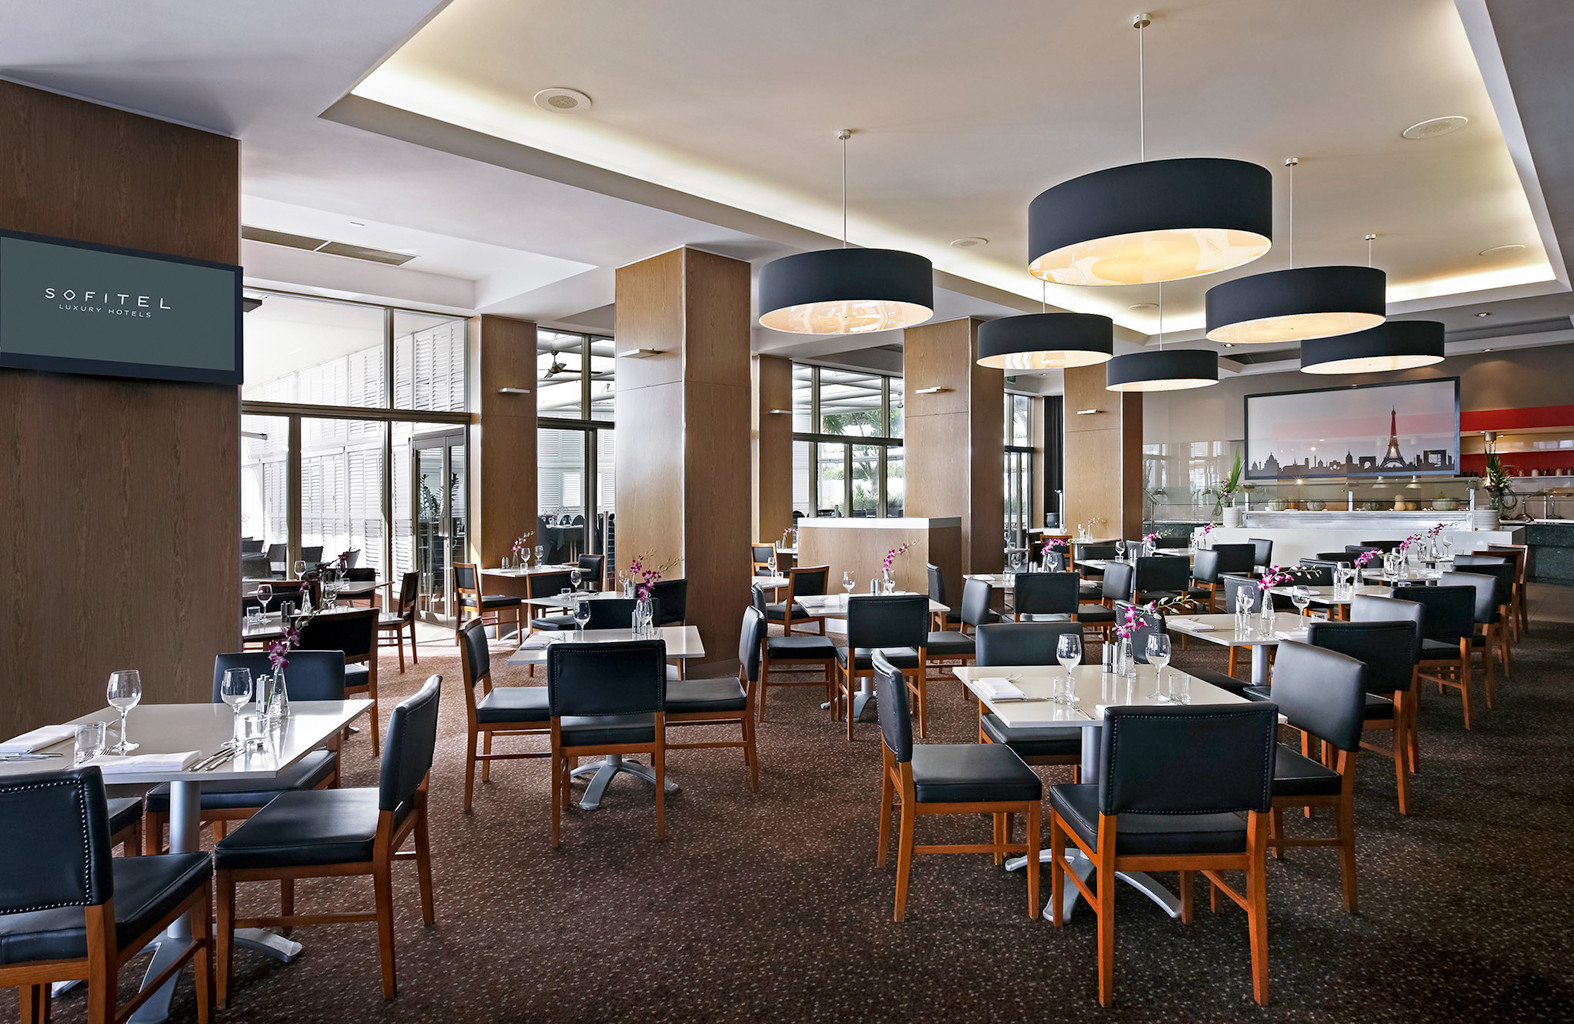 City Dining Drink Eat chair restaurant function hall cafeteria conference hall convention center dining table